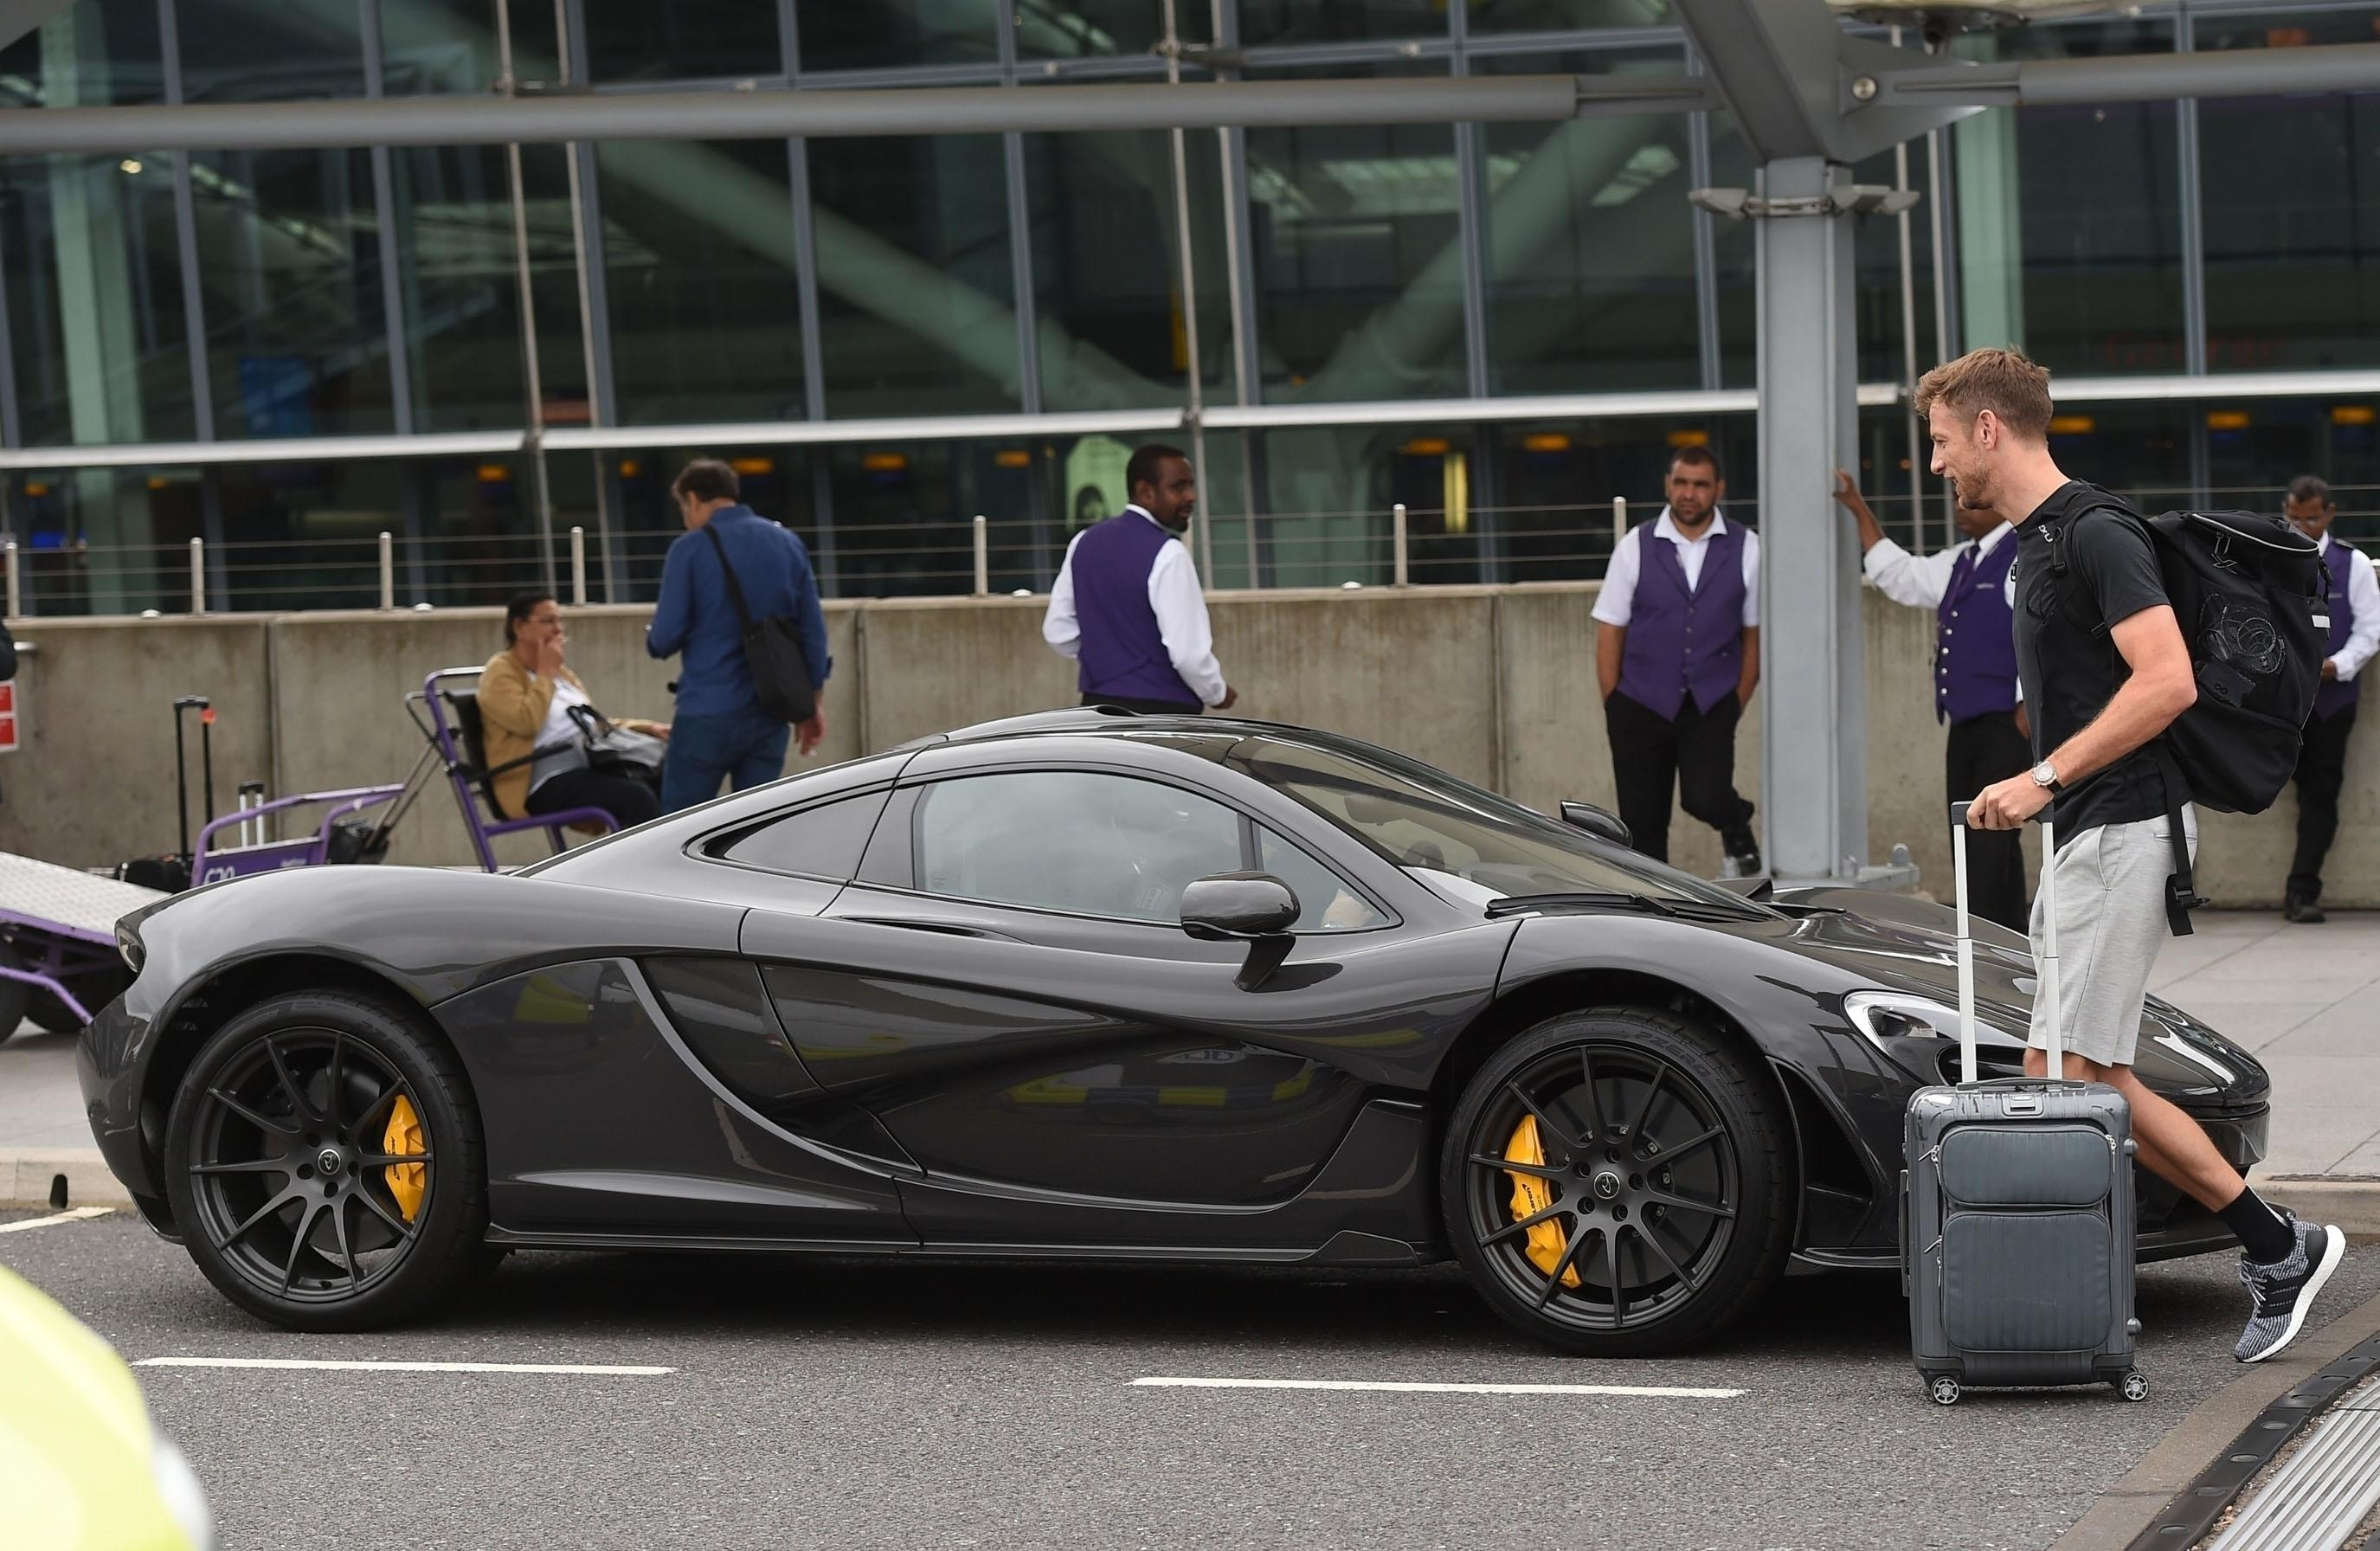 The special car was waiting for Button as he arrived in the UK